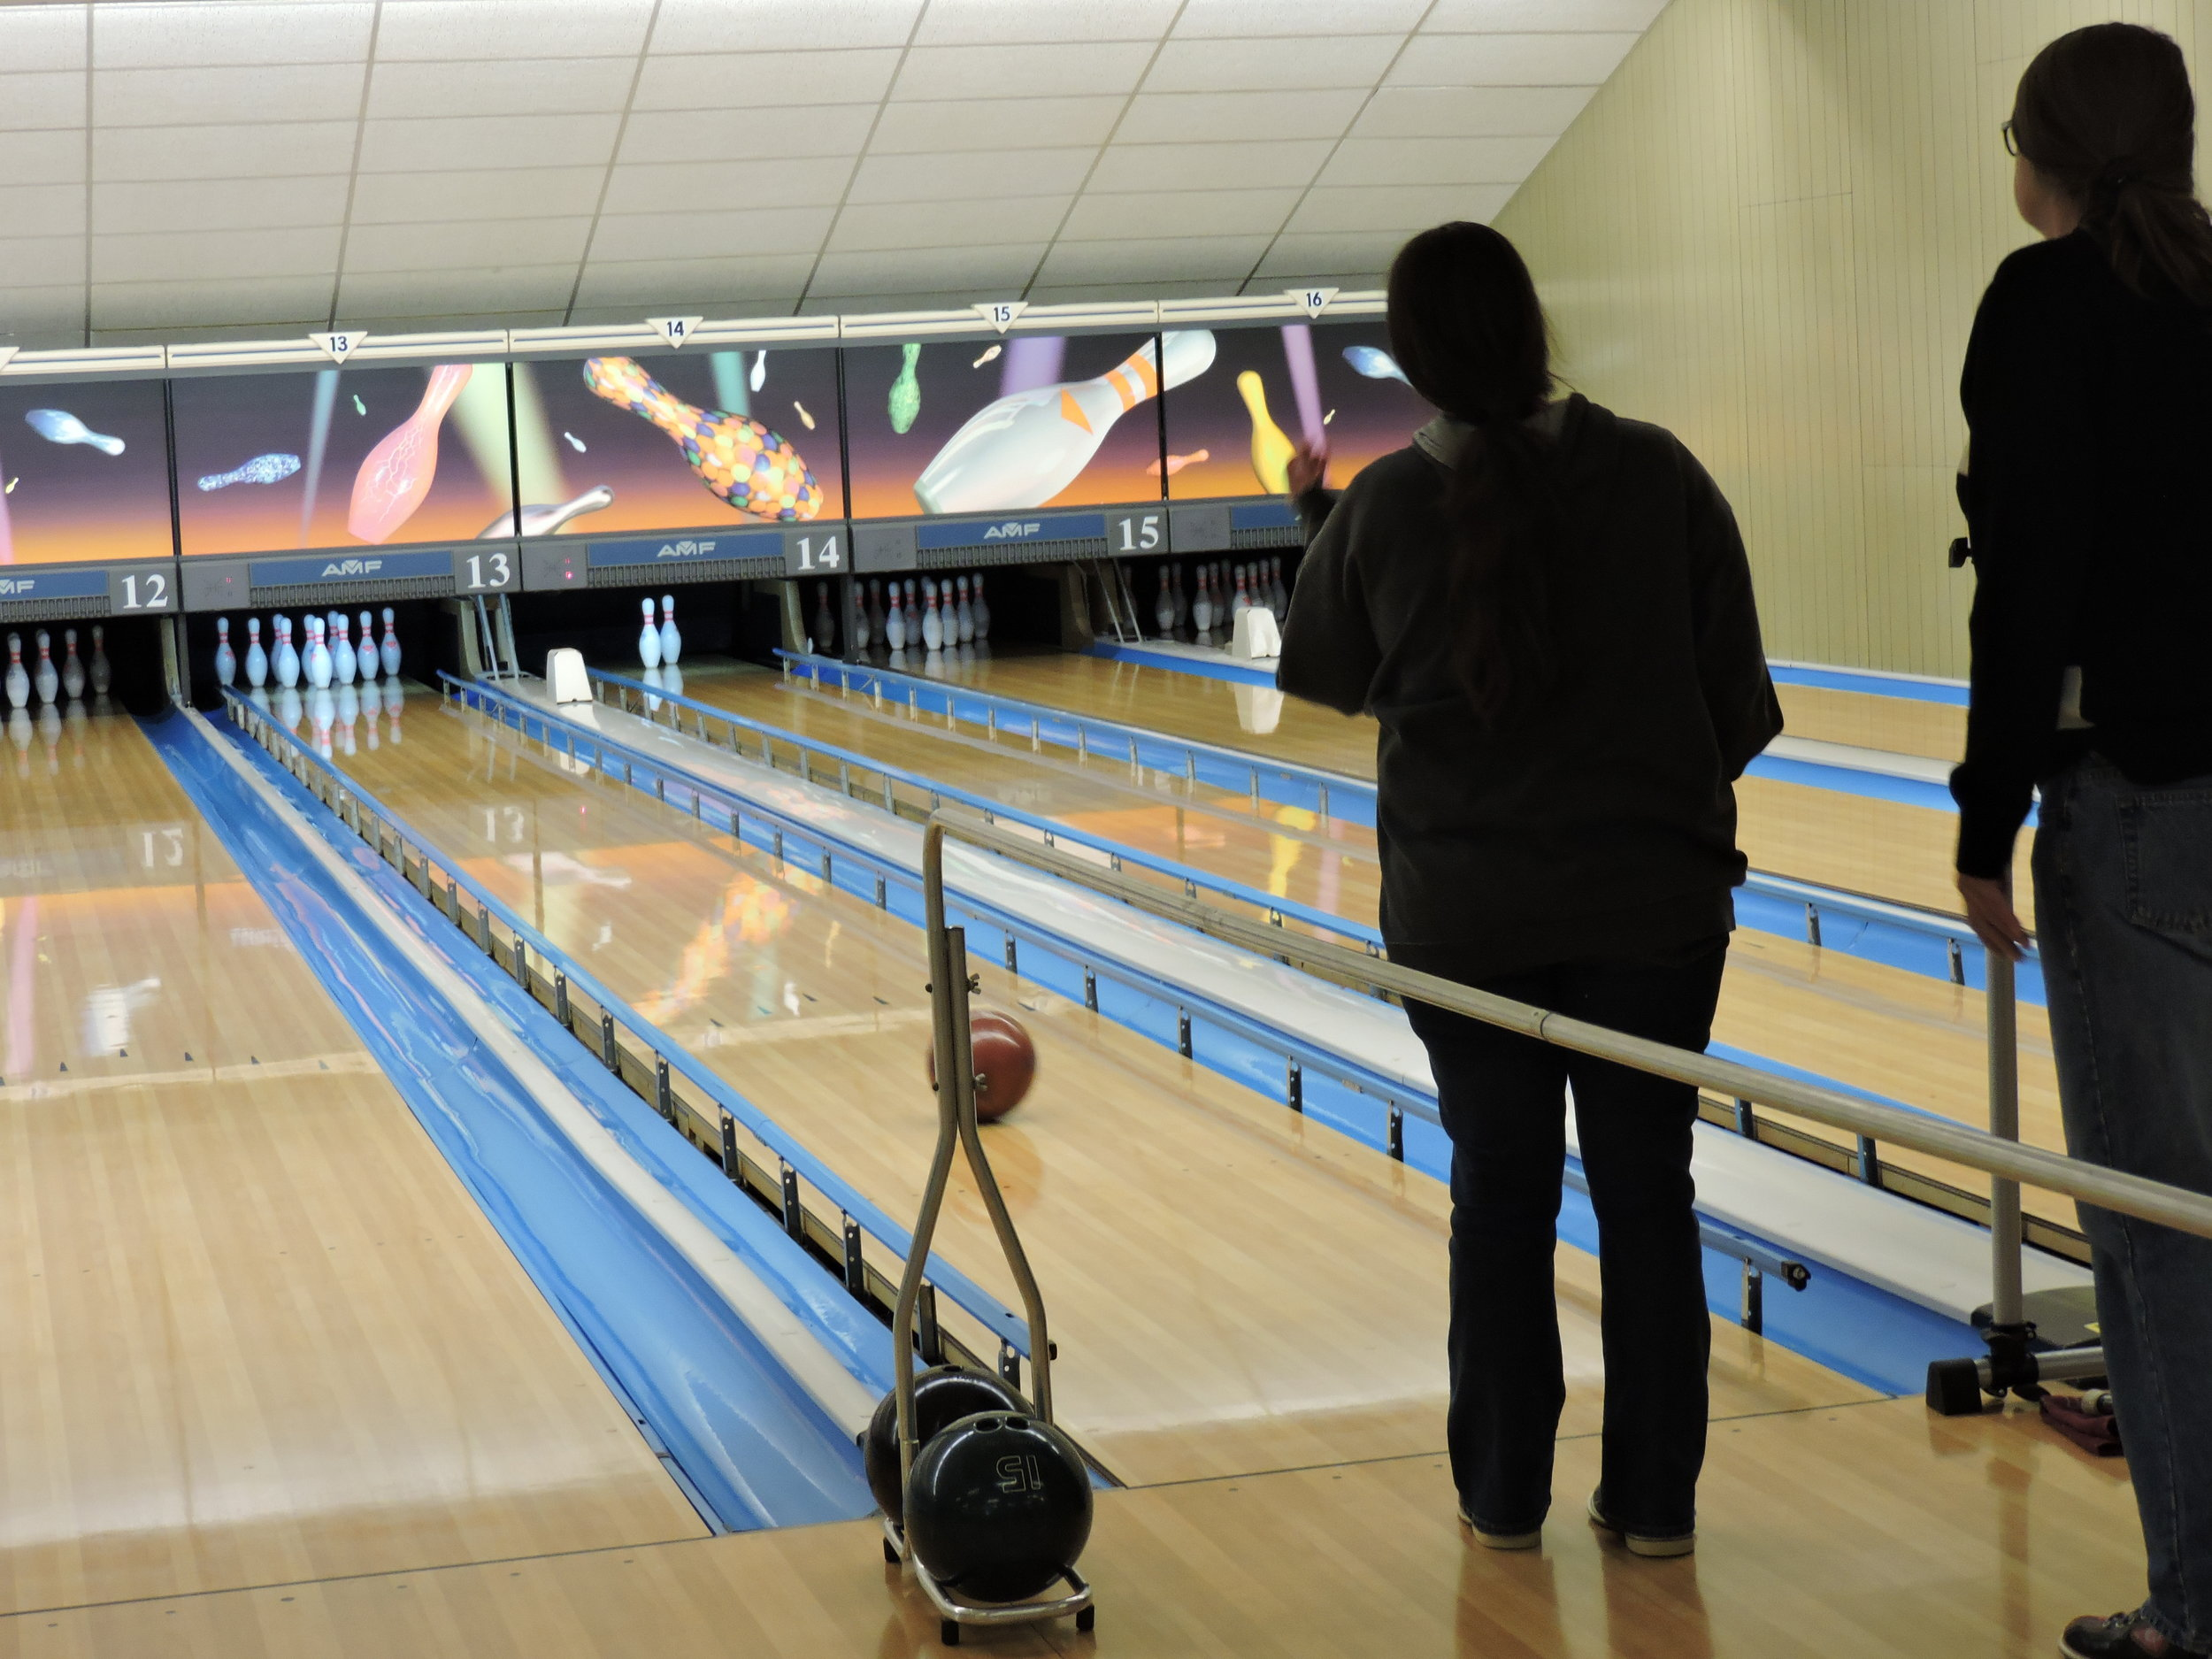 For 12 weeks during the winter months, clients bowl weekly as an activity in physical fitness, coordination, or as a fun social gathering. We support this activity by providing the funds for the entire league.